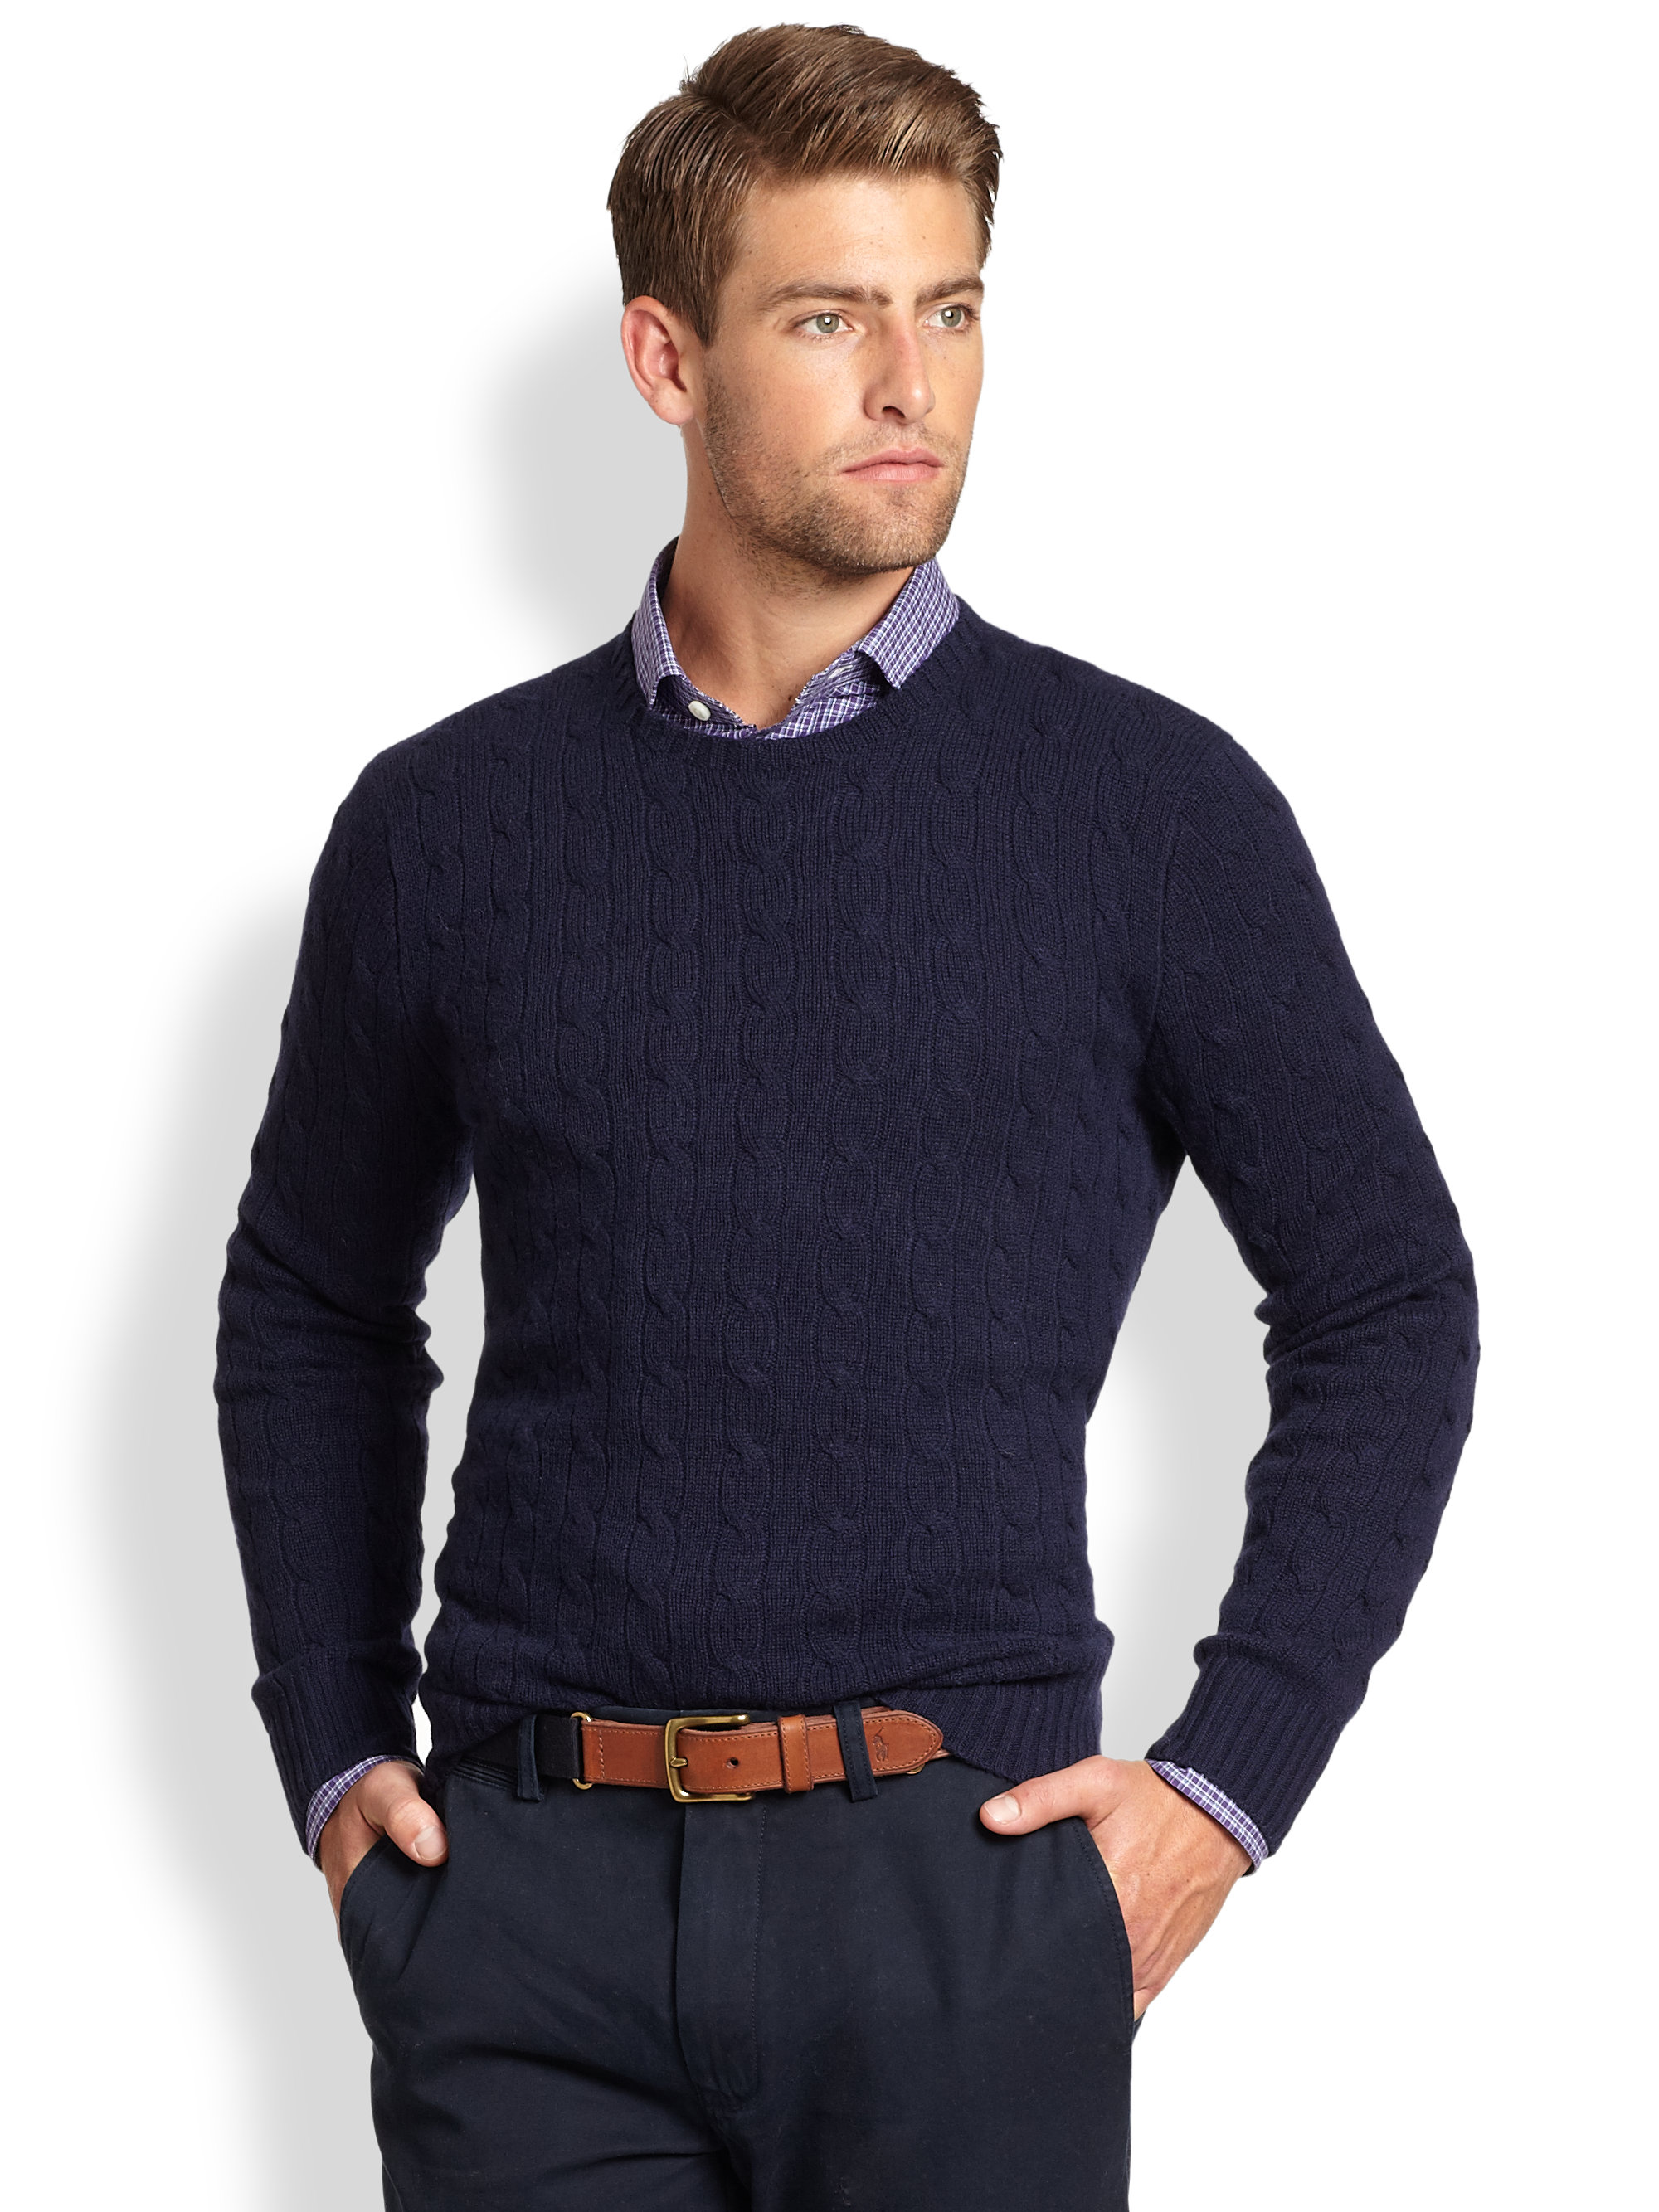 polo ralph lauren cable knit cashmere crewneck sweater in blue for men lyst. Black Bedroom Furniture Sets. Home Design Ideas